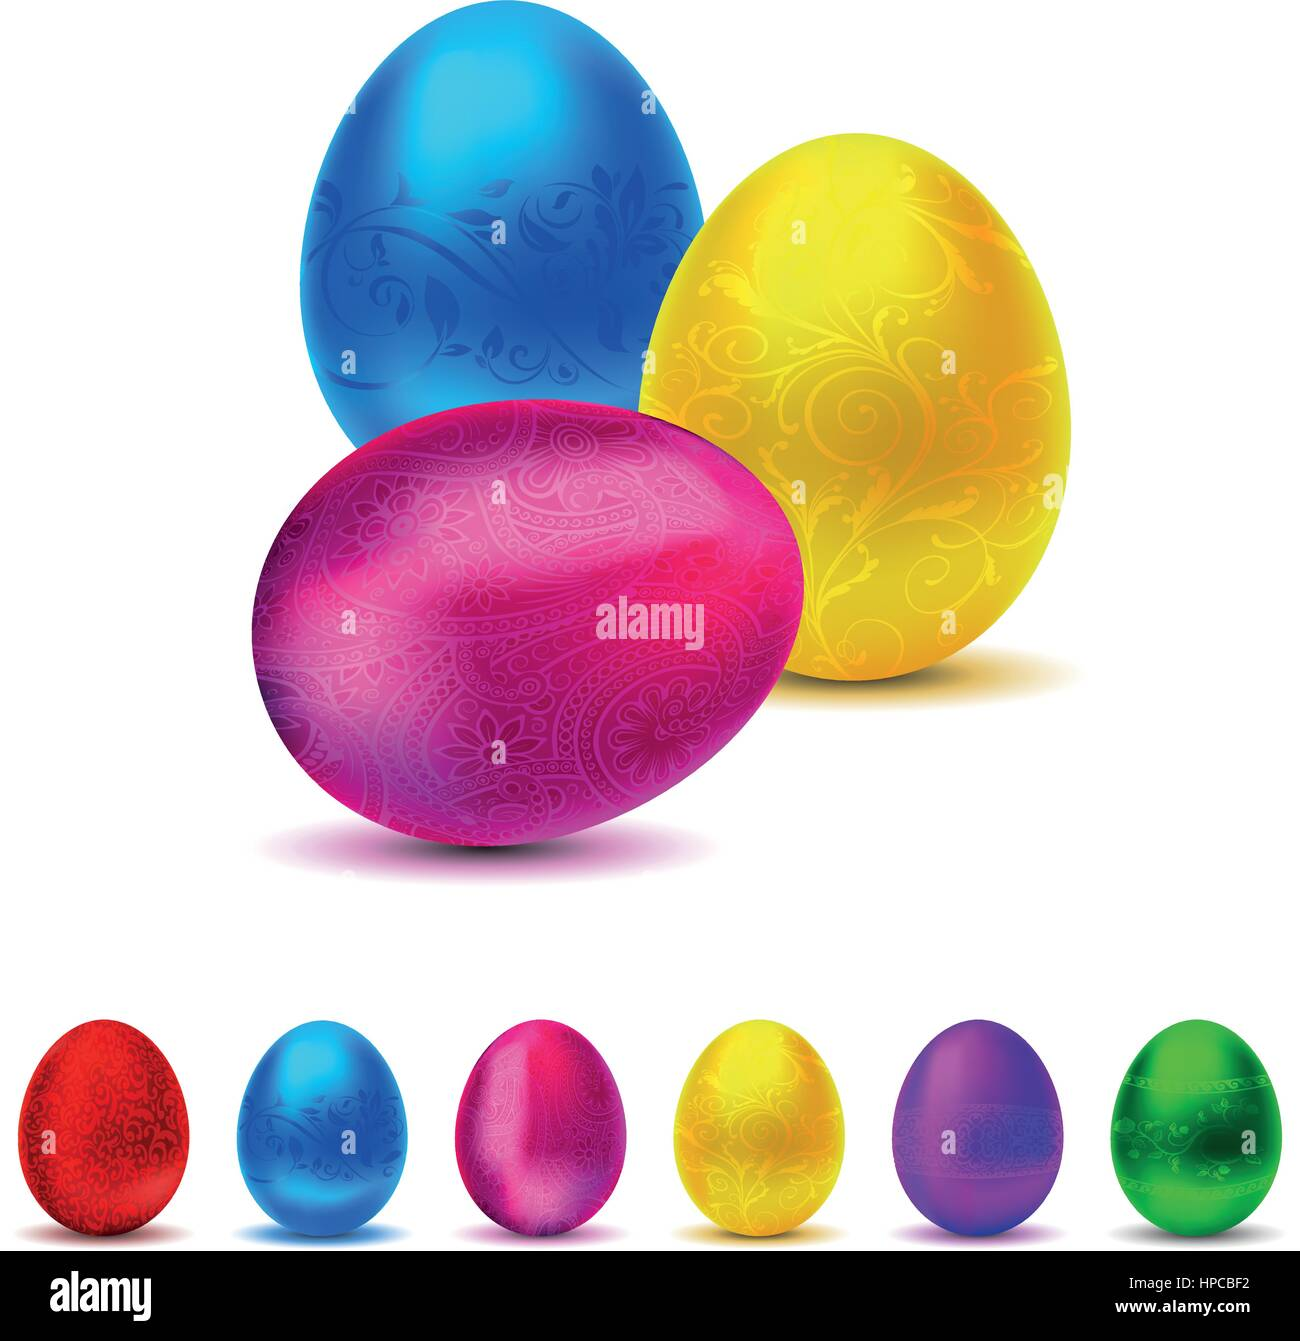 Metallic decorated Easter Egg collection - 6 colors - Stock Vector